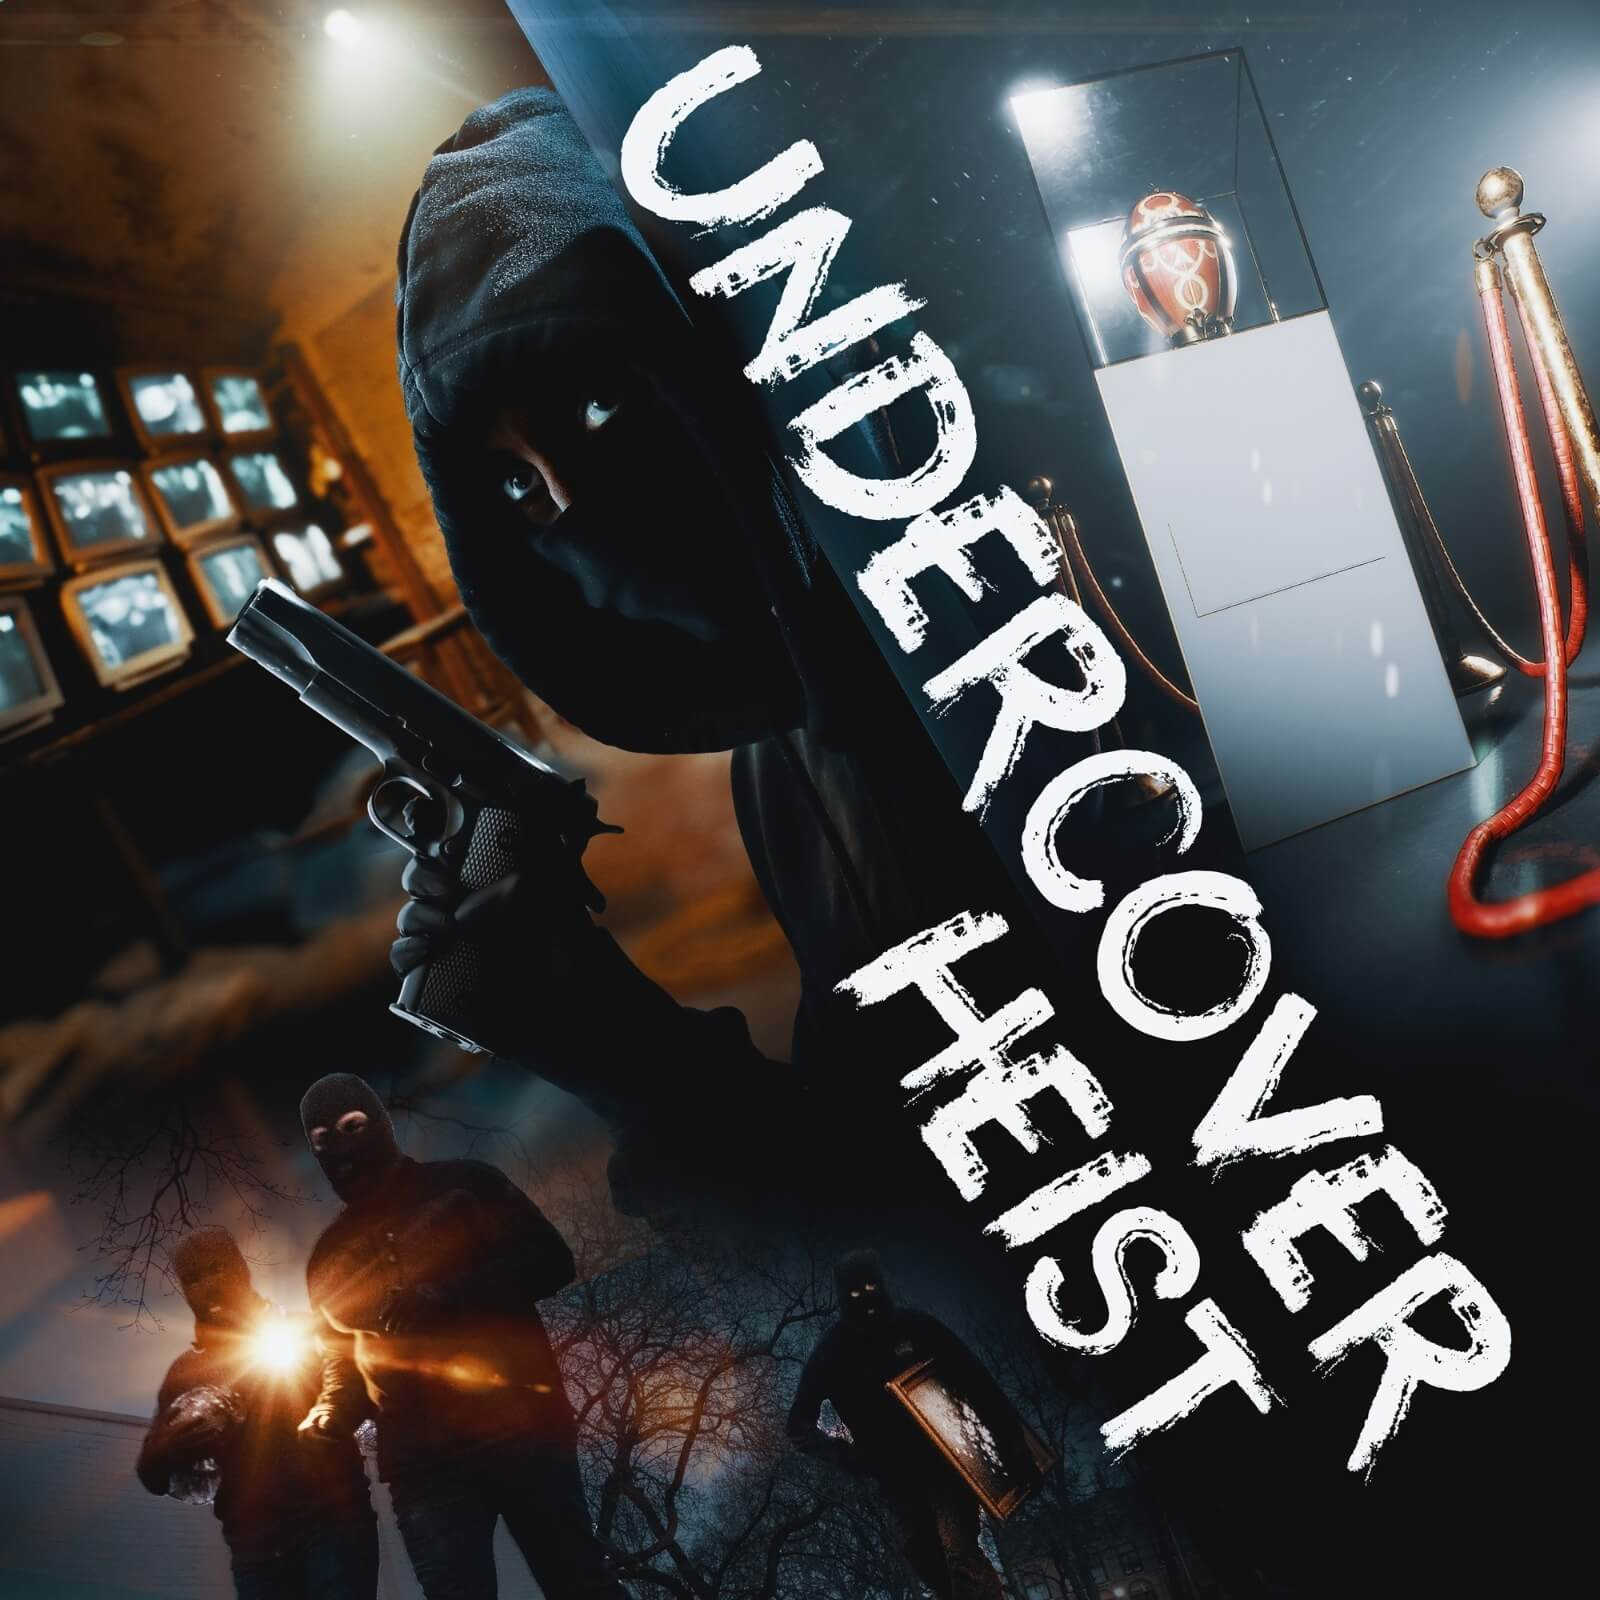 online escape room unsolved mystery deel 2